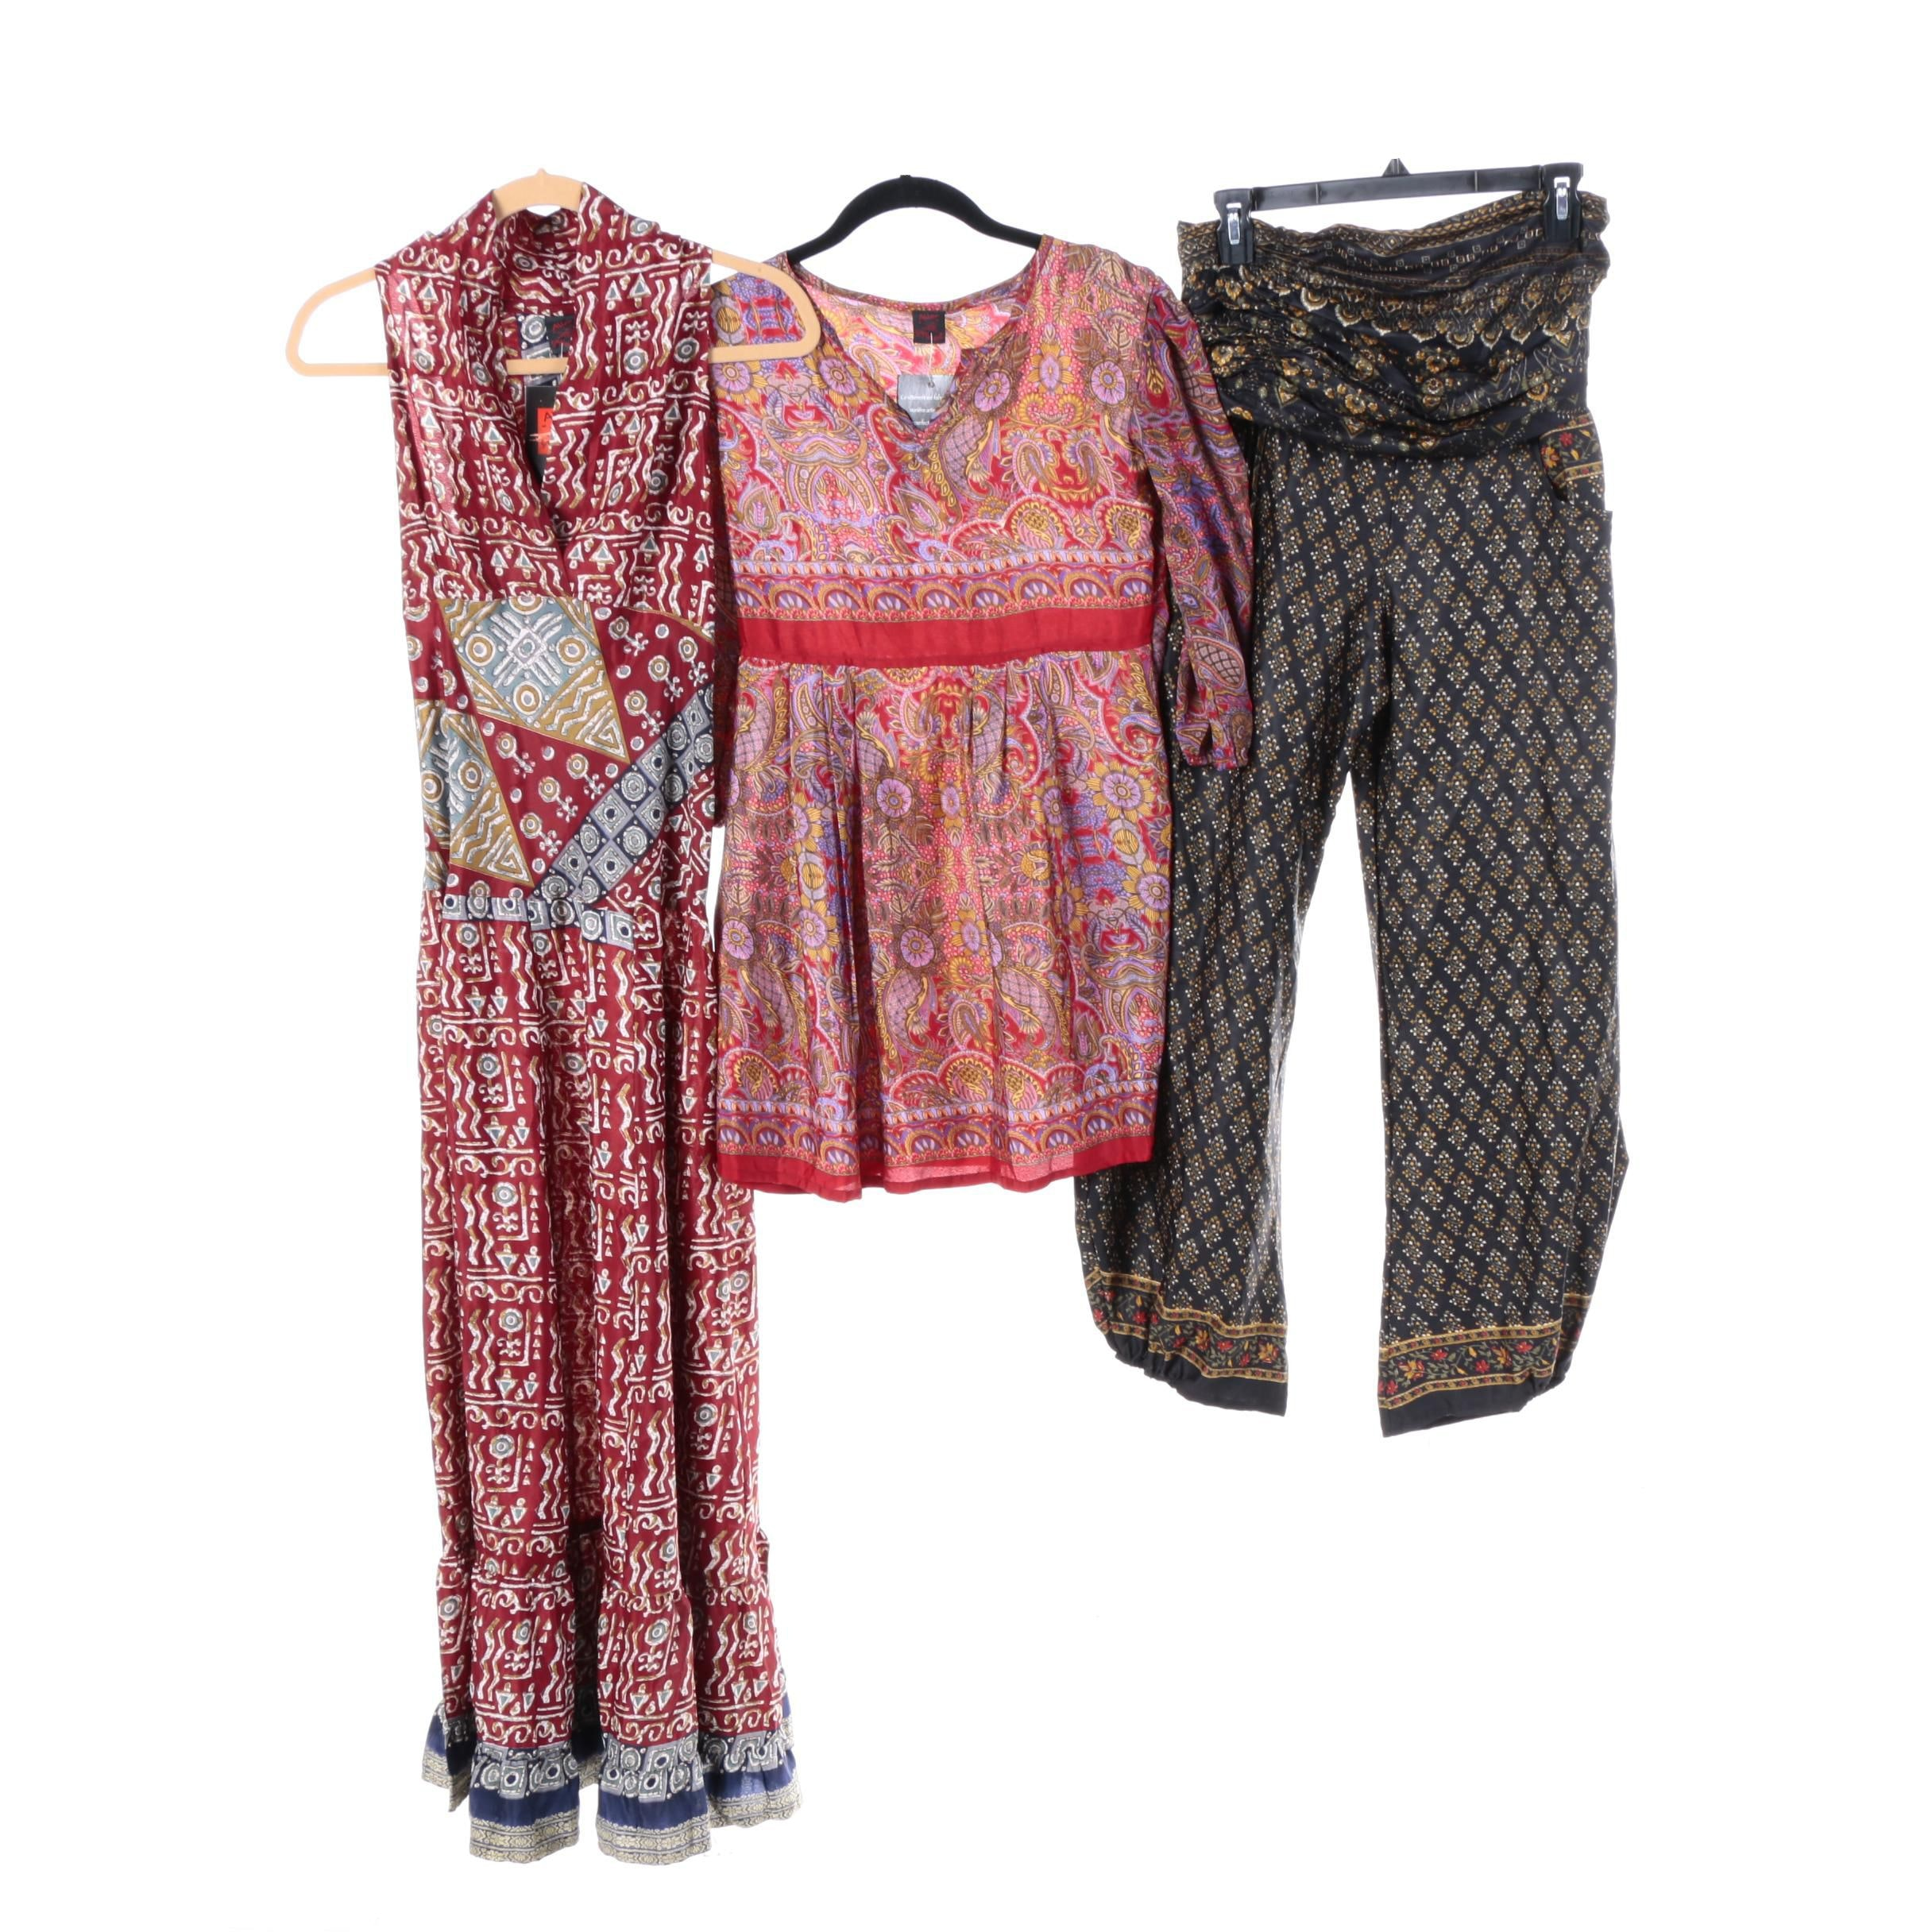 Women's Aller Simplement Vintage Sari Dress, Tunic Top and Palazzo Pants